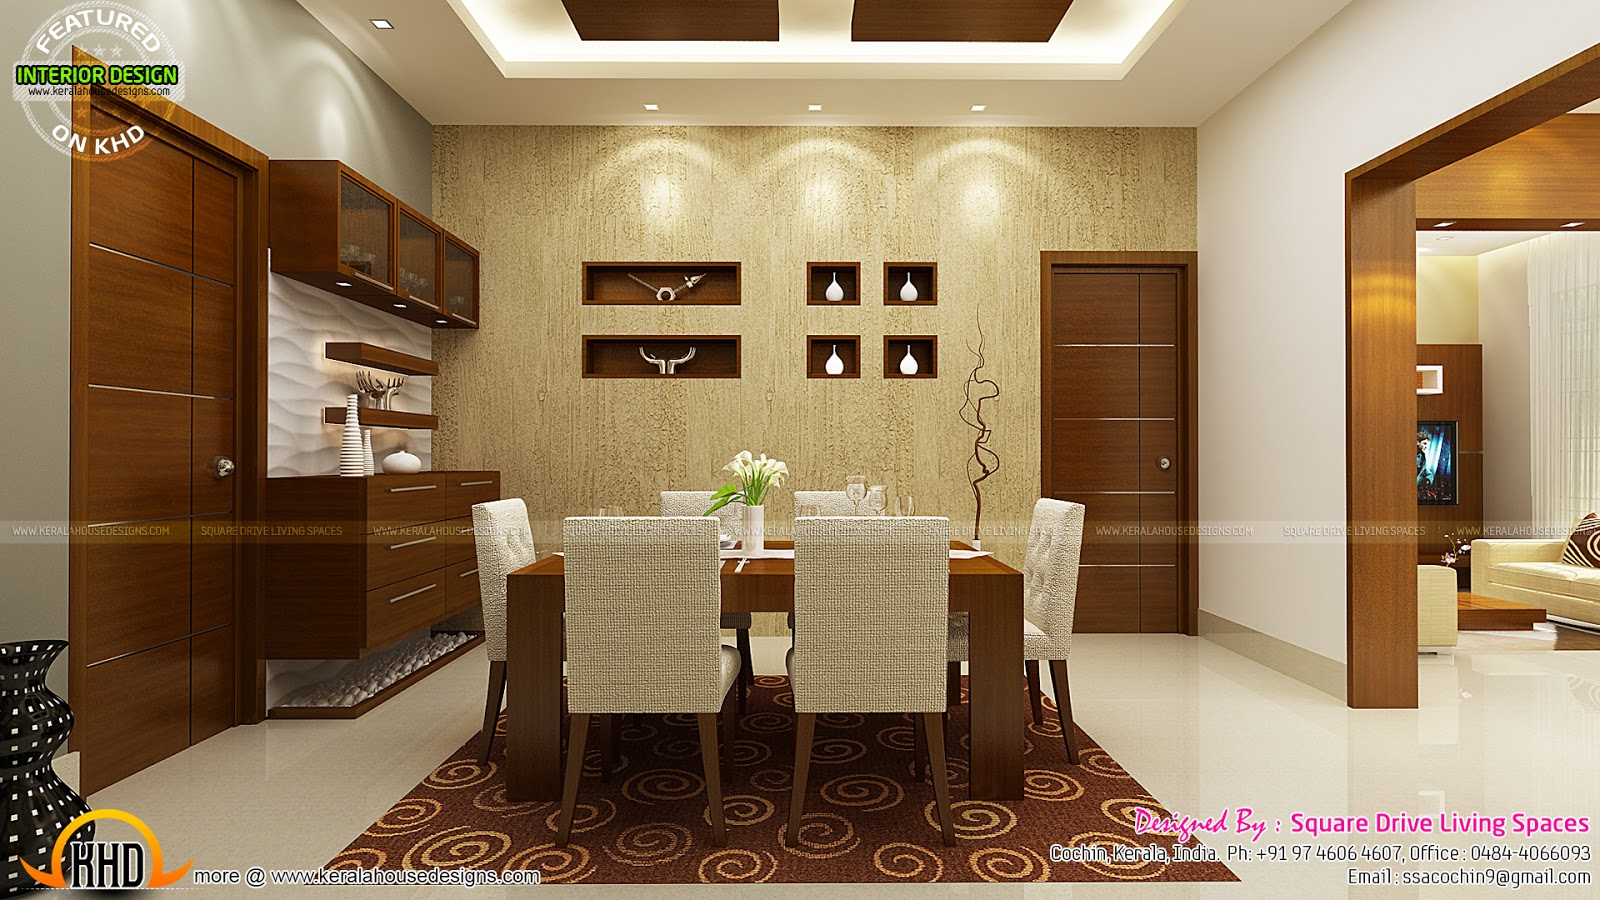 Home Living Hall Design Of Contemporary Kitchen Dining And Living Room Kerala Home